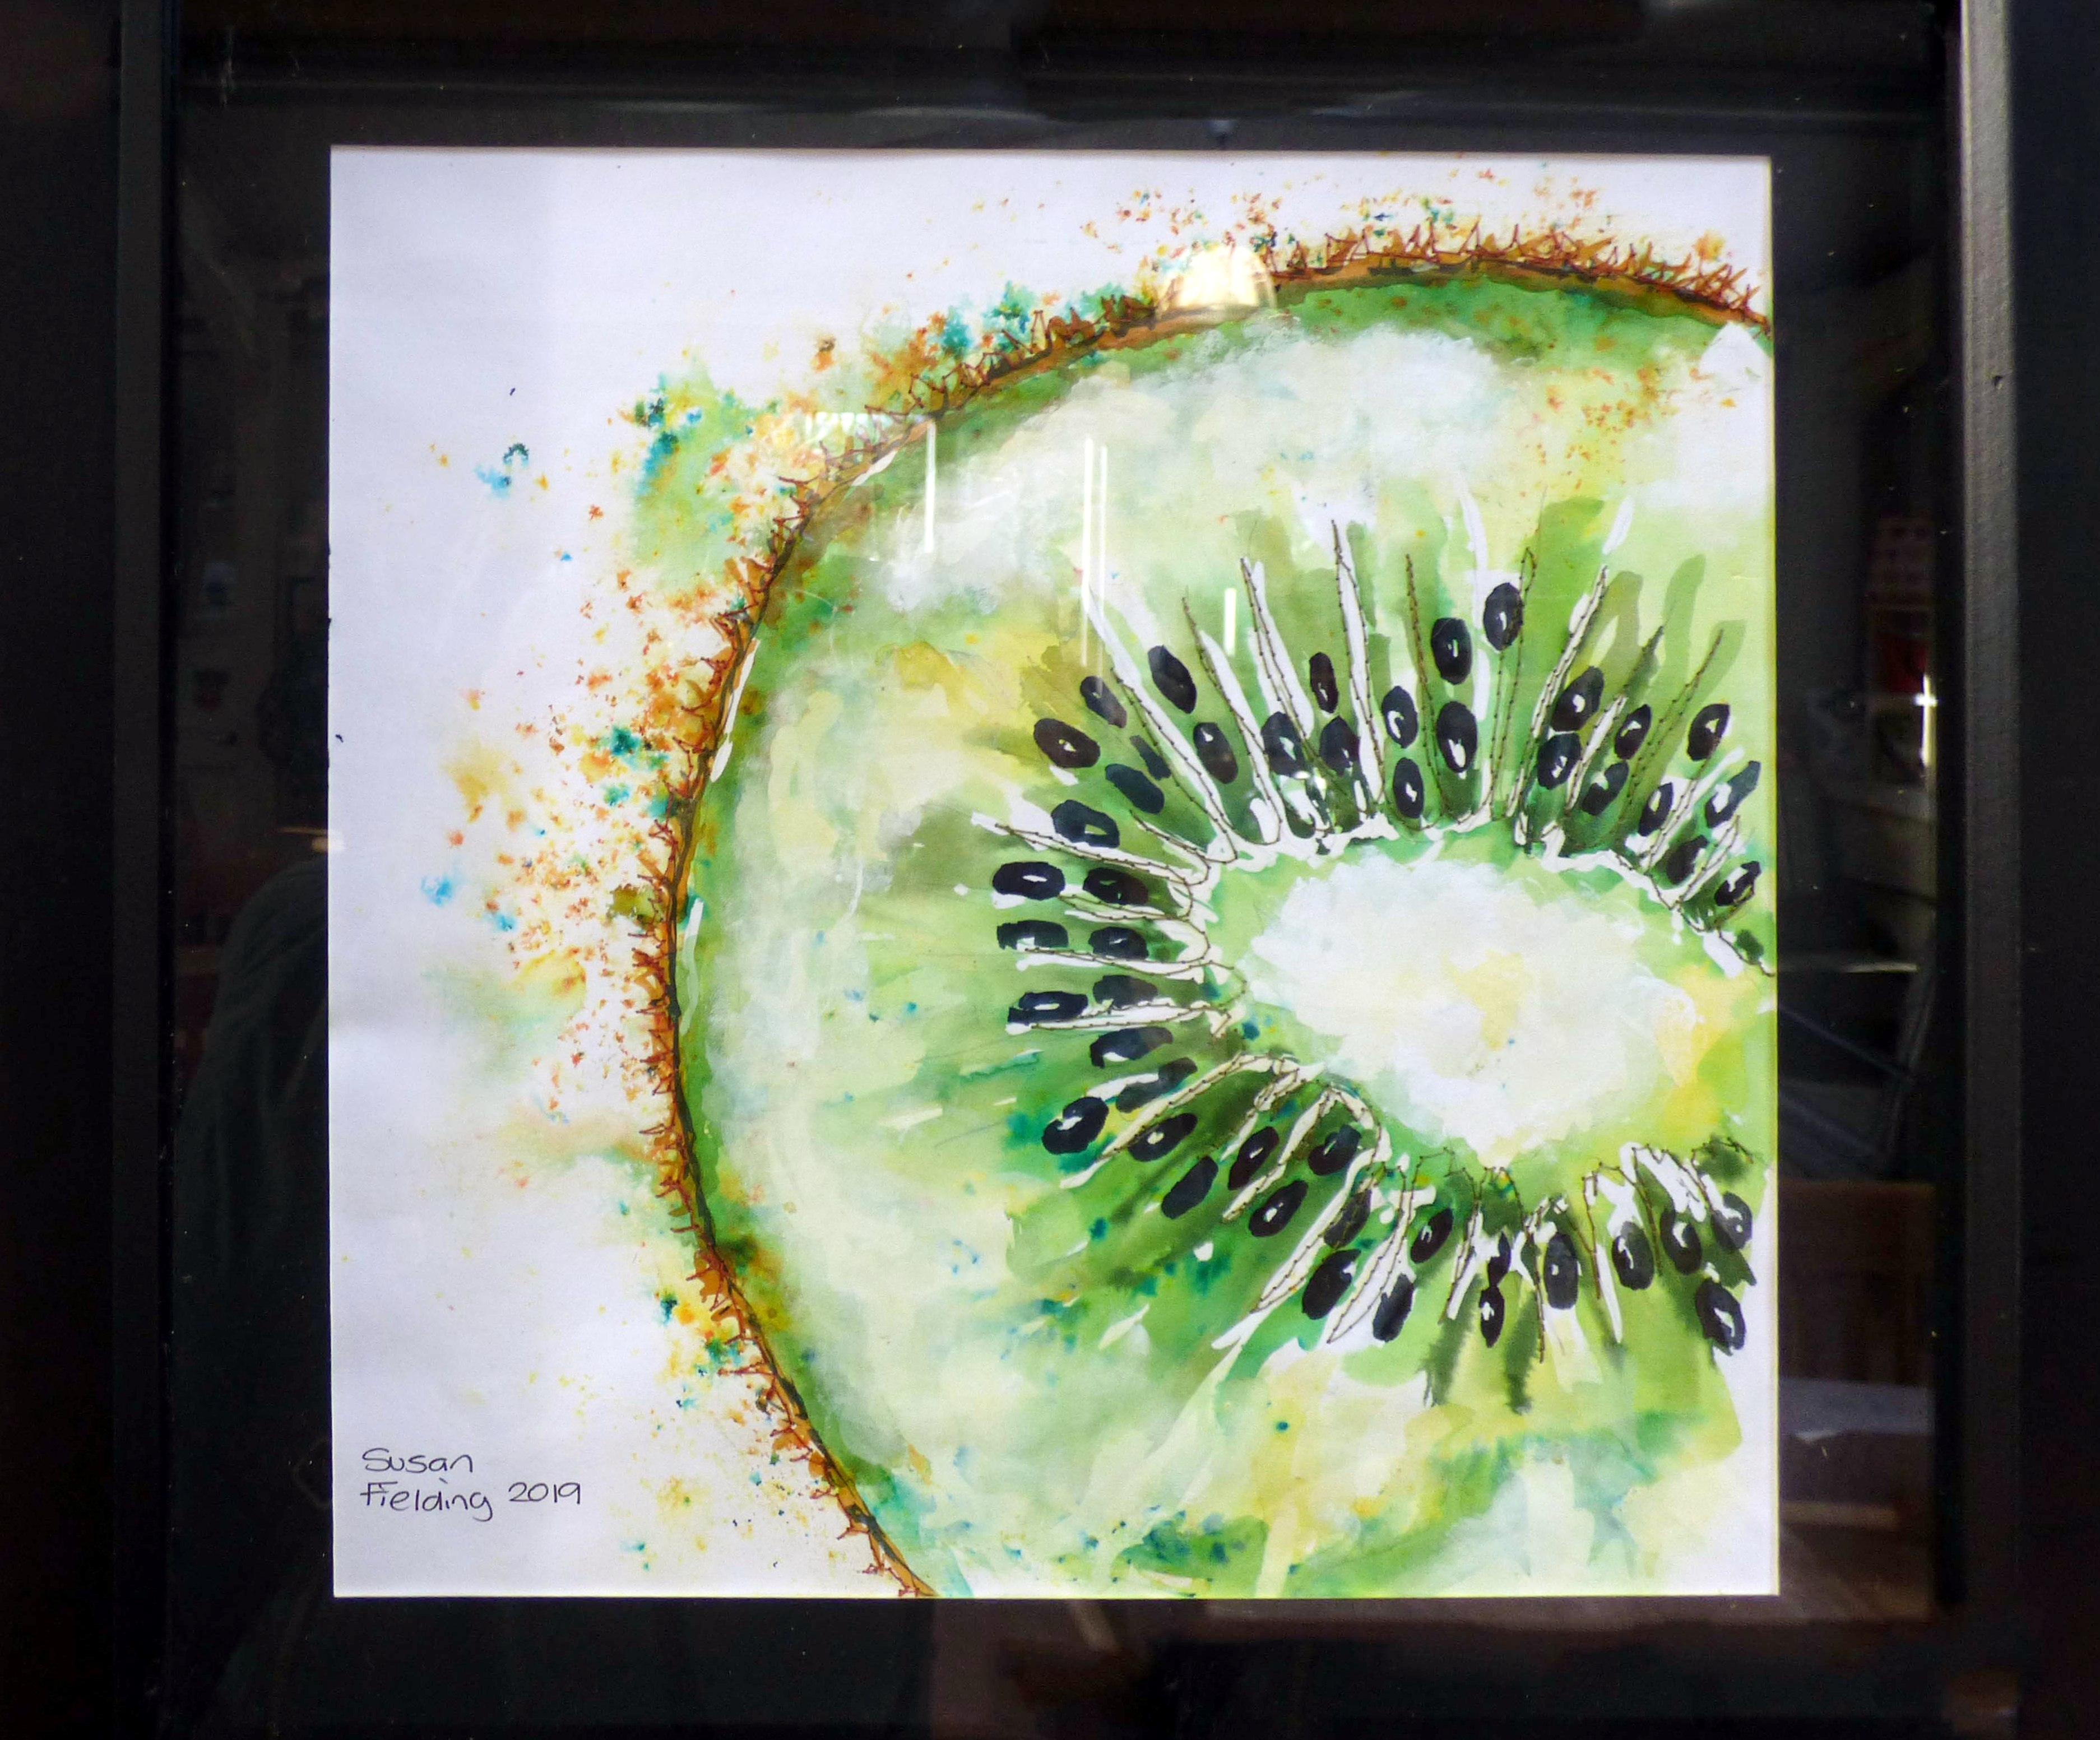 KIWI SEEDS by Susan Fielding, Natural Progression Textile Group, Jan 2020